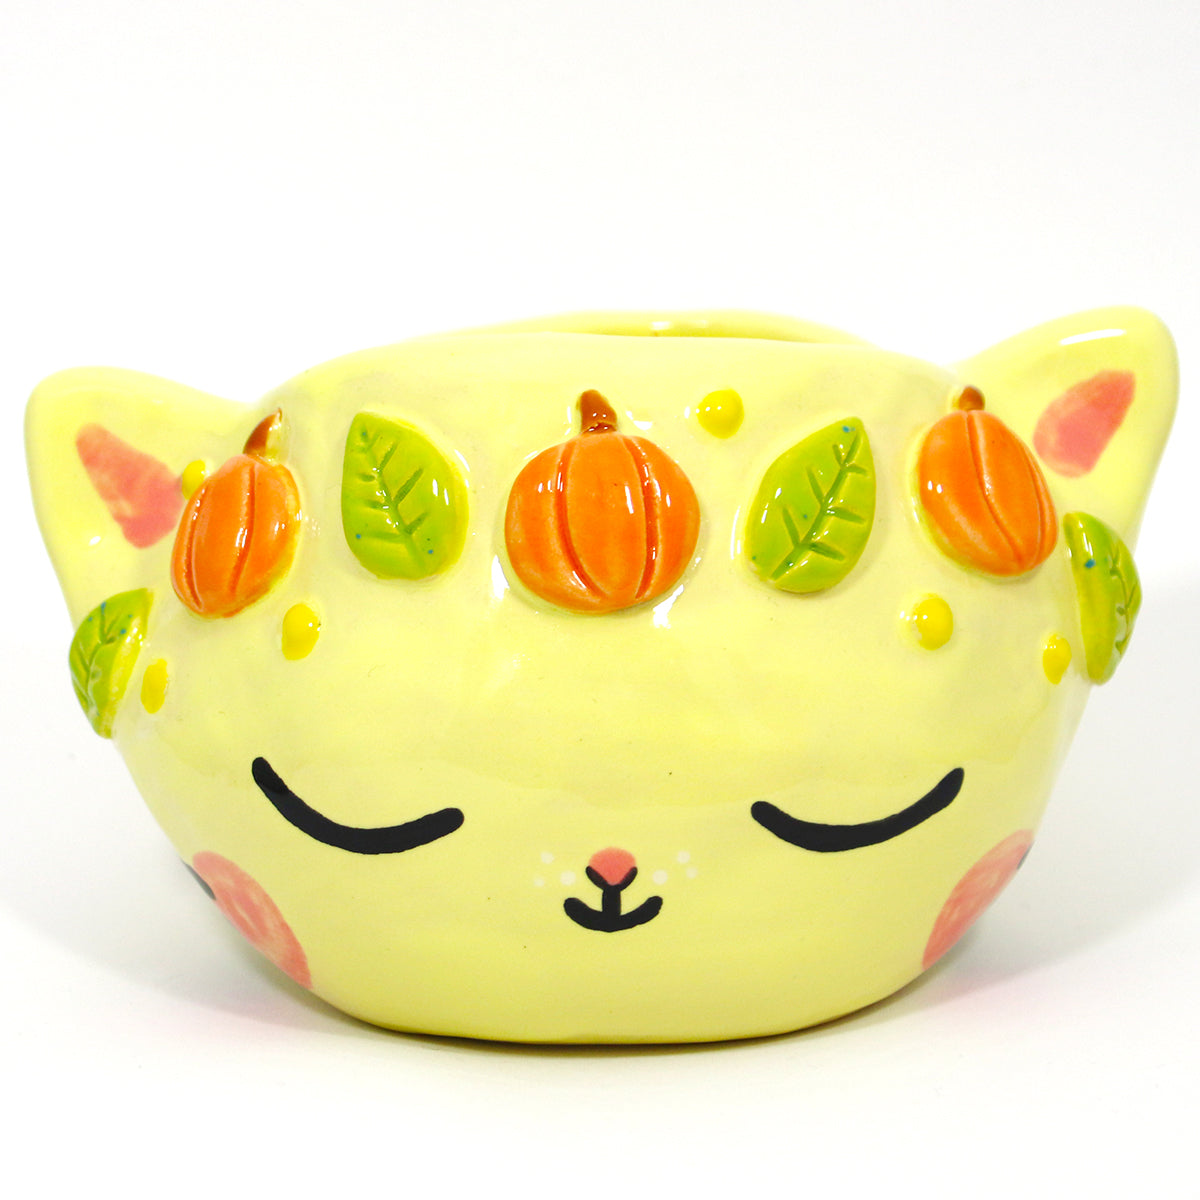 Ceramic Kitty Planter #1189 - M